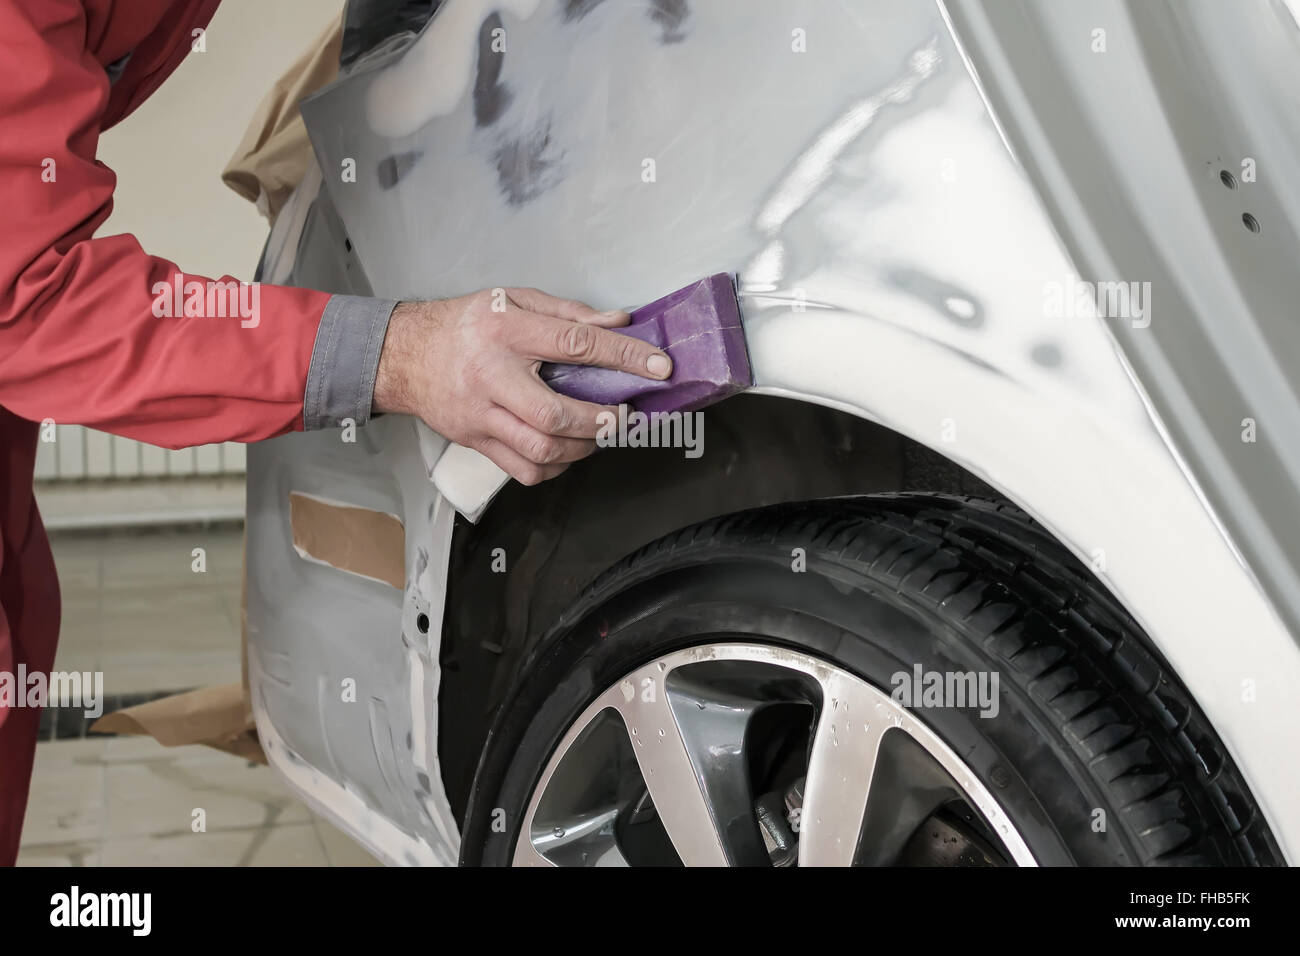 Car painter prepares the rear wing of the car for painting. - Stock Image